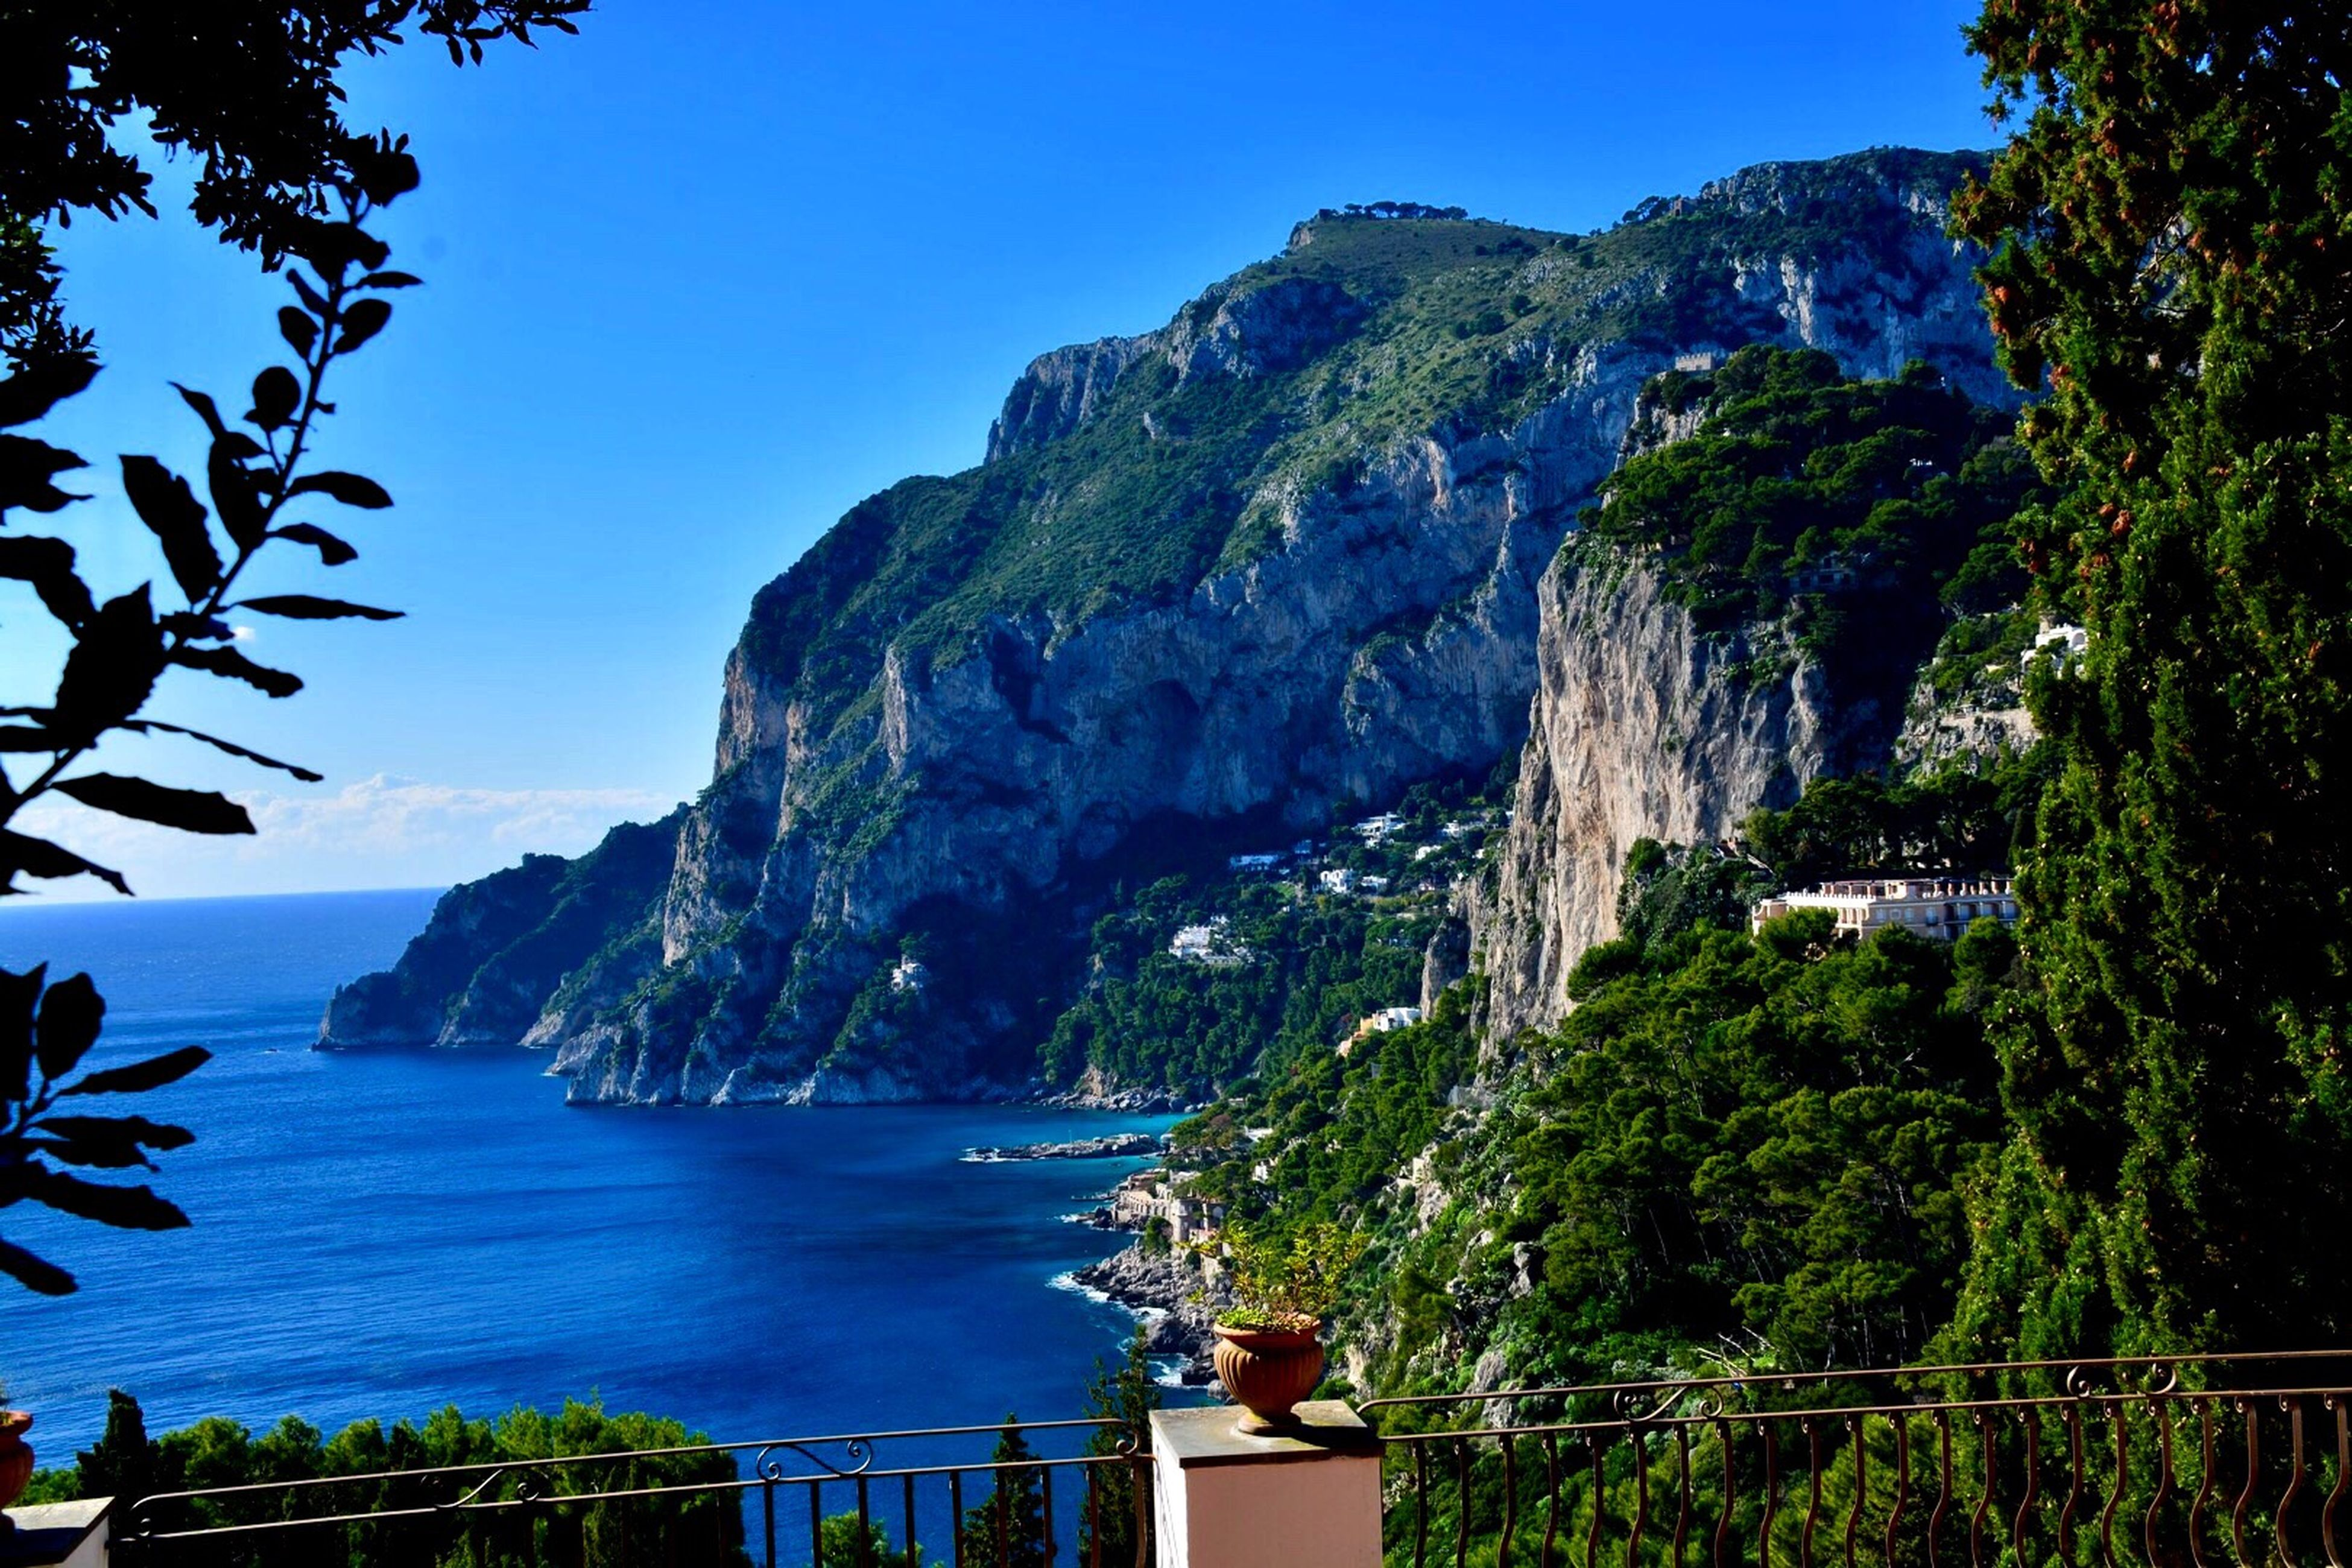 sea, water, mountain, scenics, beauty in nature, rock - object, nature, cliff, blue, steep, tree, tranquil scene, outdoors, beach, travel destinations, vacations, no people, horizon over water, landscape, nautical vessel, sky, architecture, day, yacht